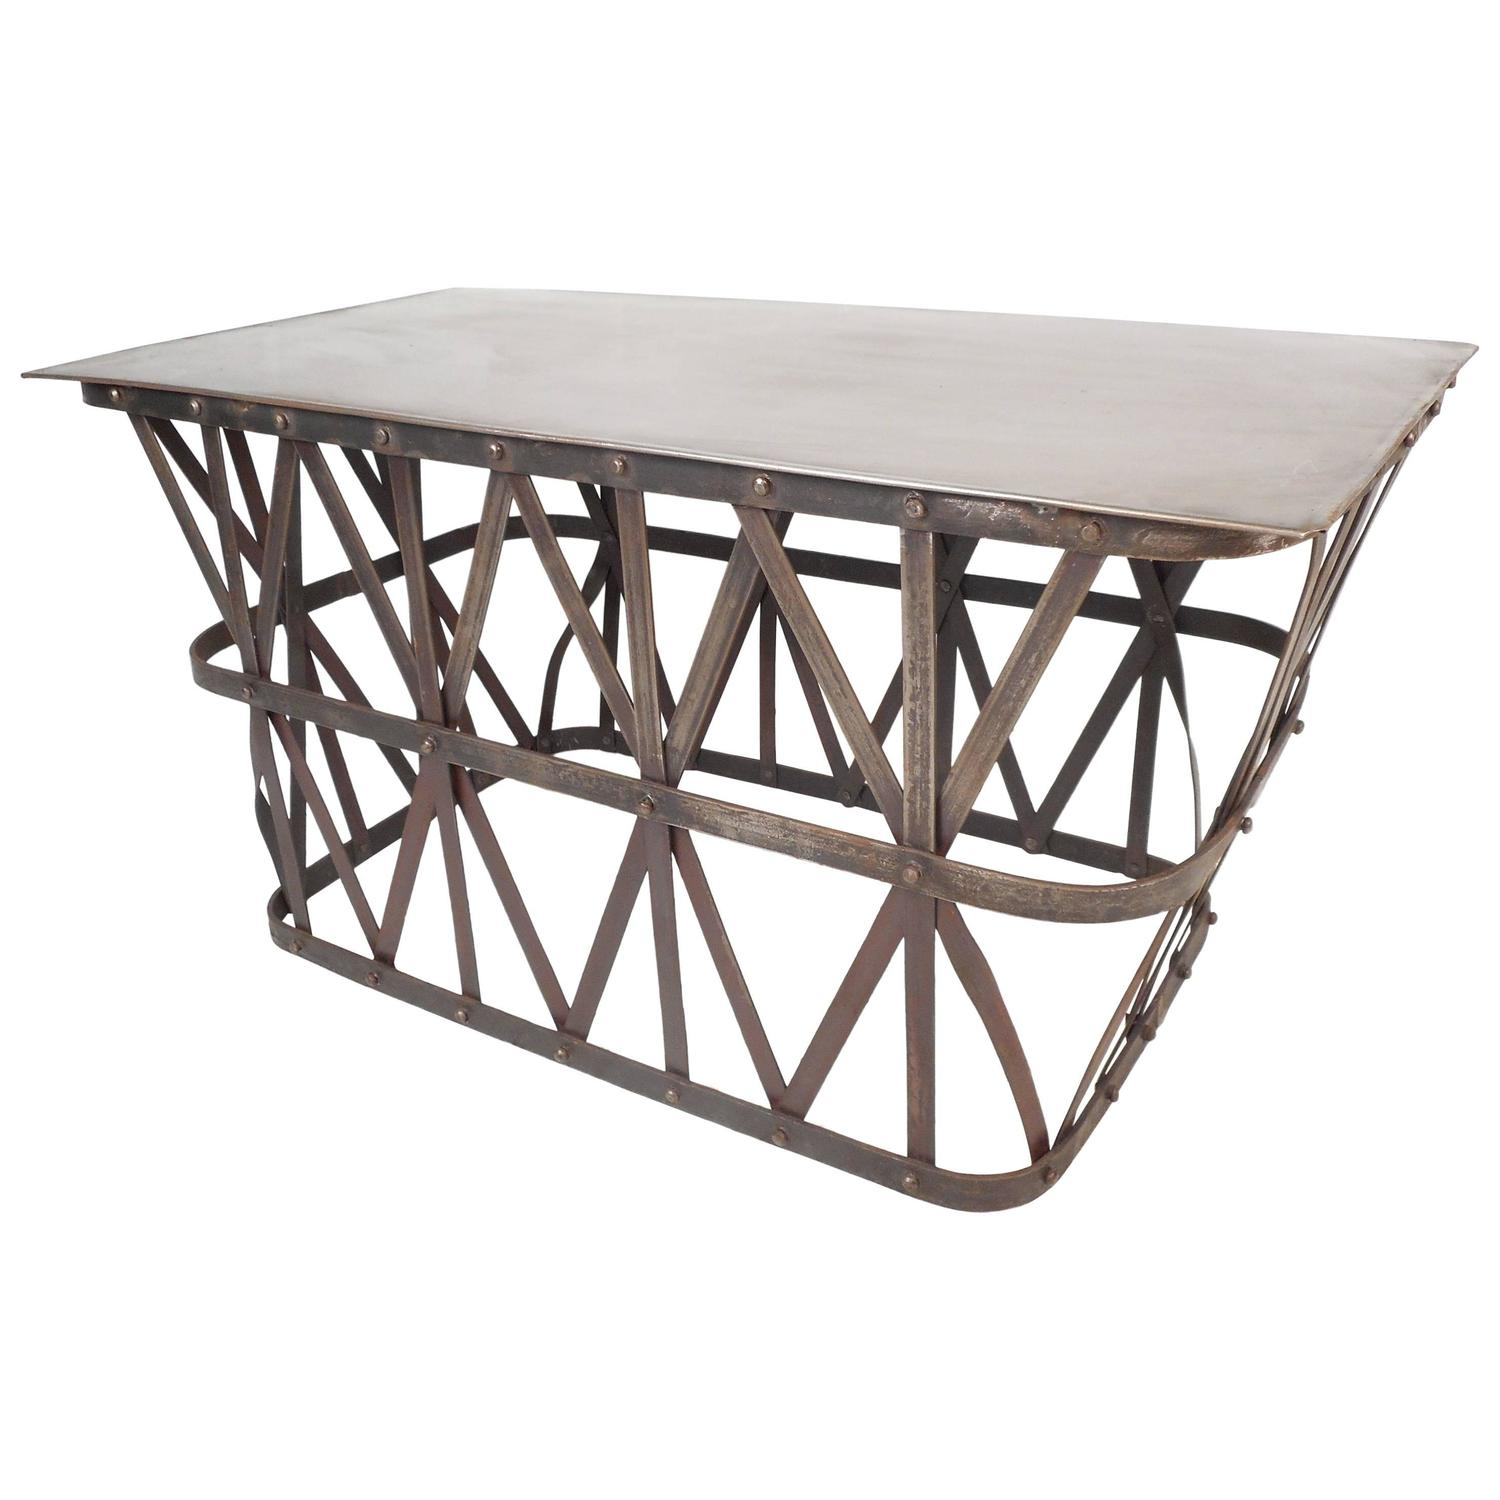 Vintage Industrial Metal Coffee Table For Sale At 1stdibs